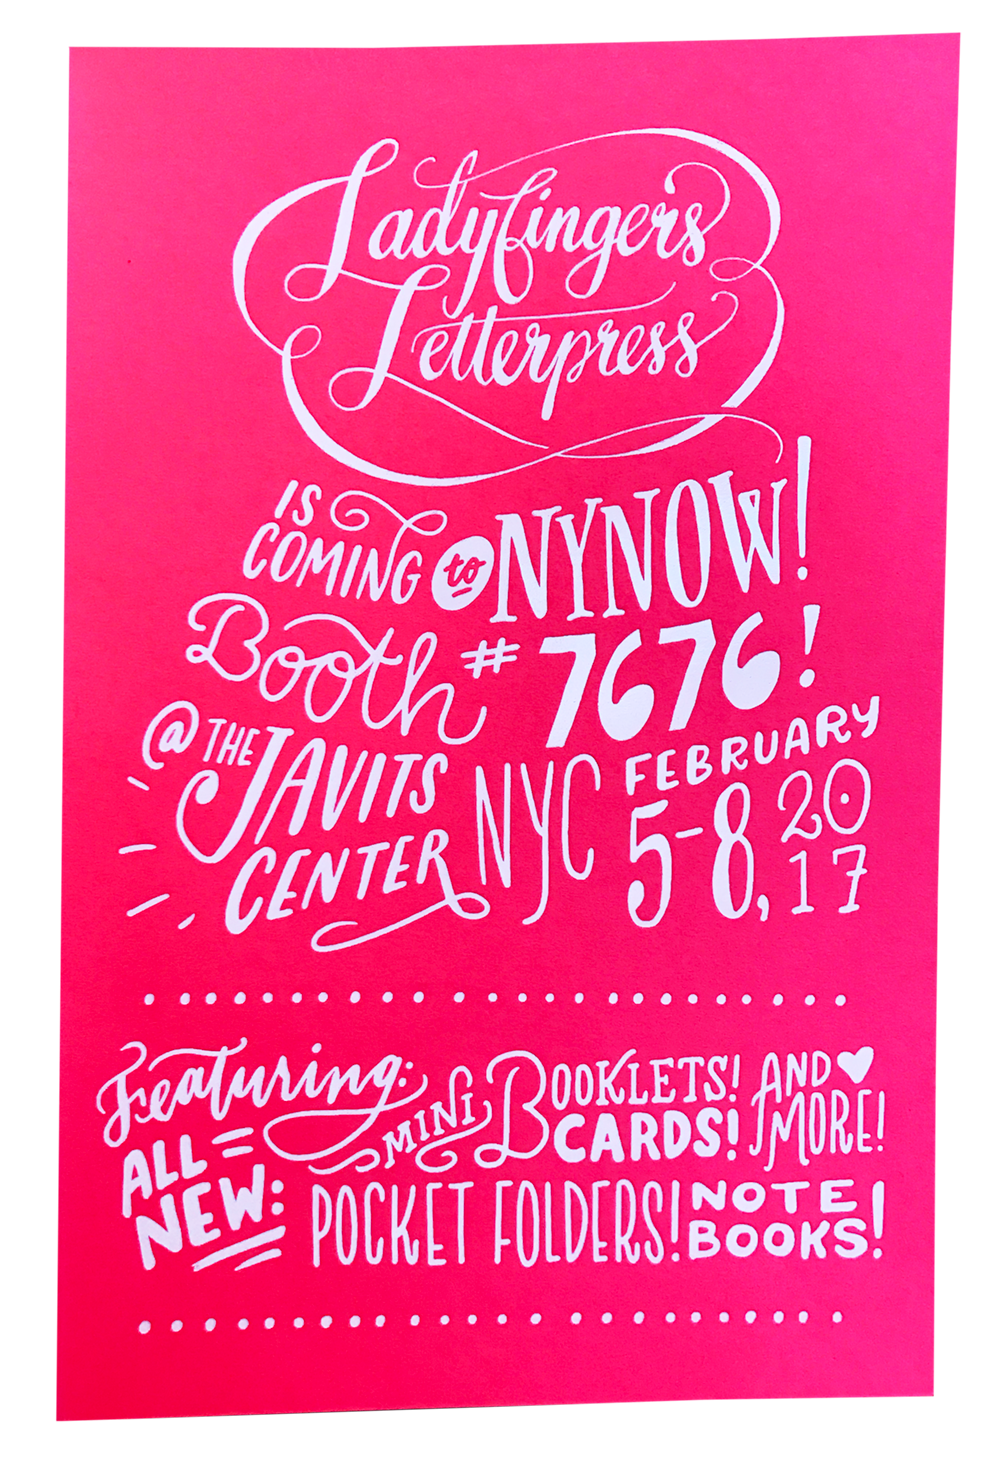 Ladyfingers Letterpress NYNOW Booth 7676